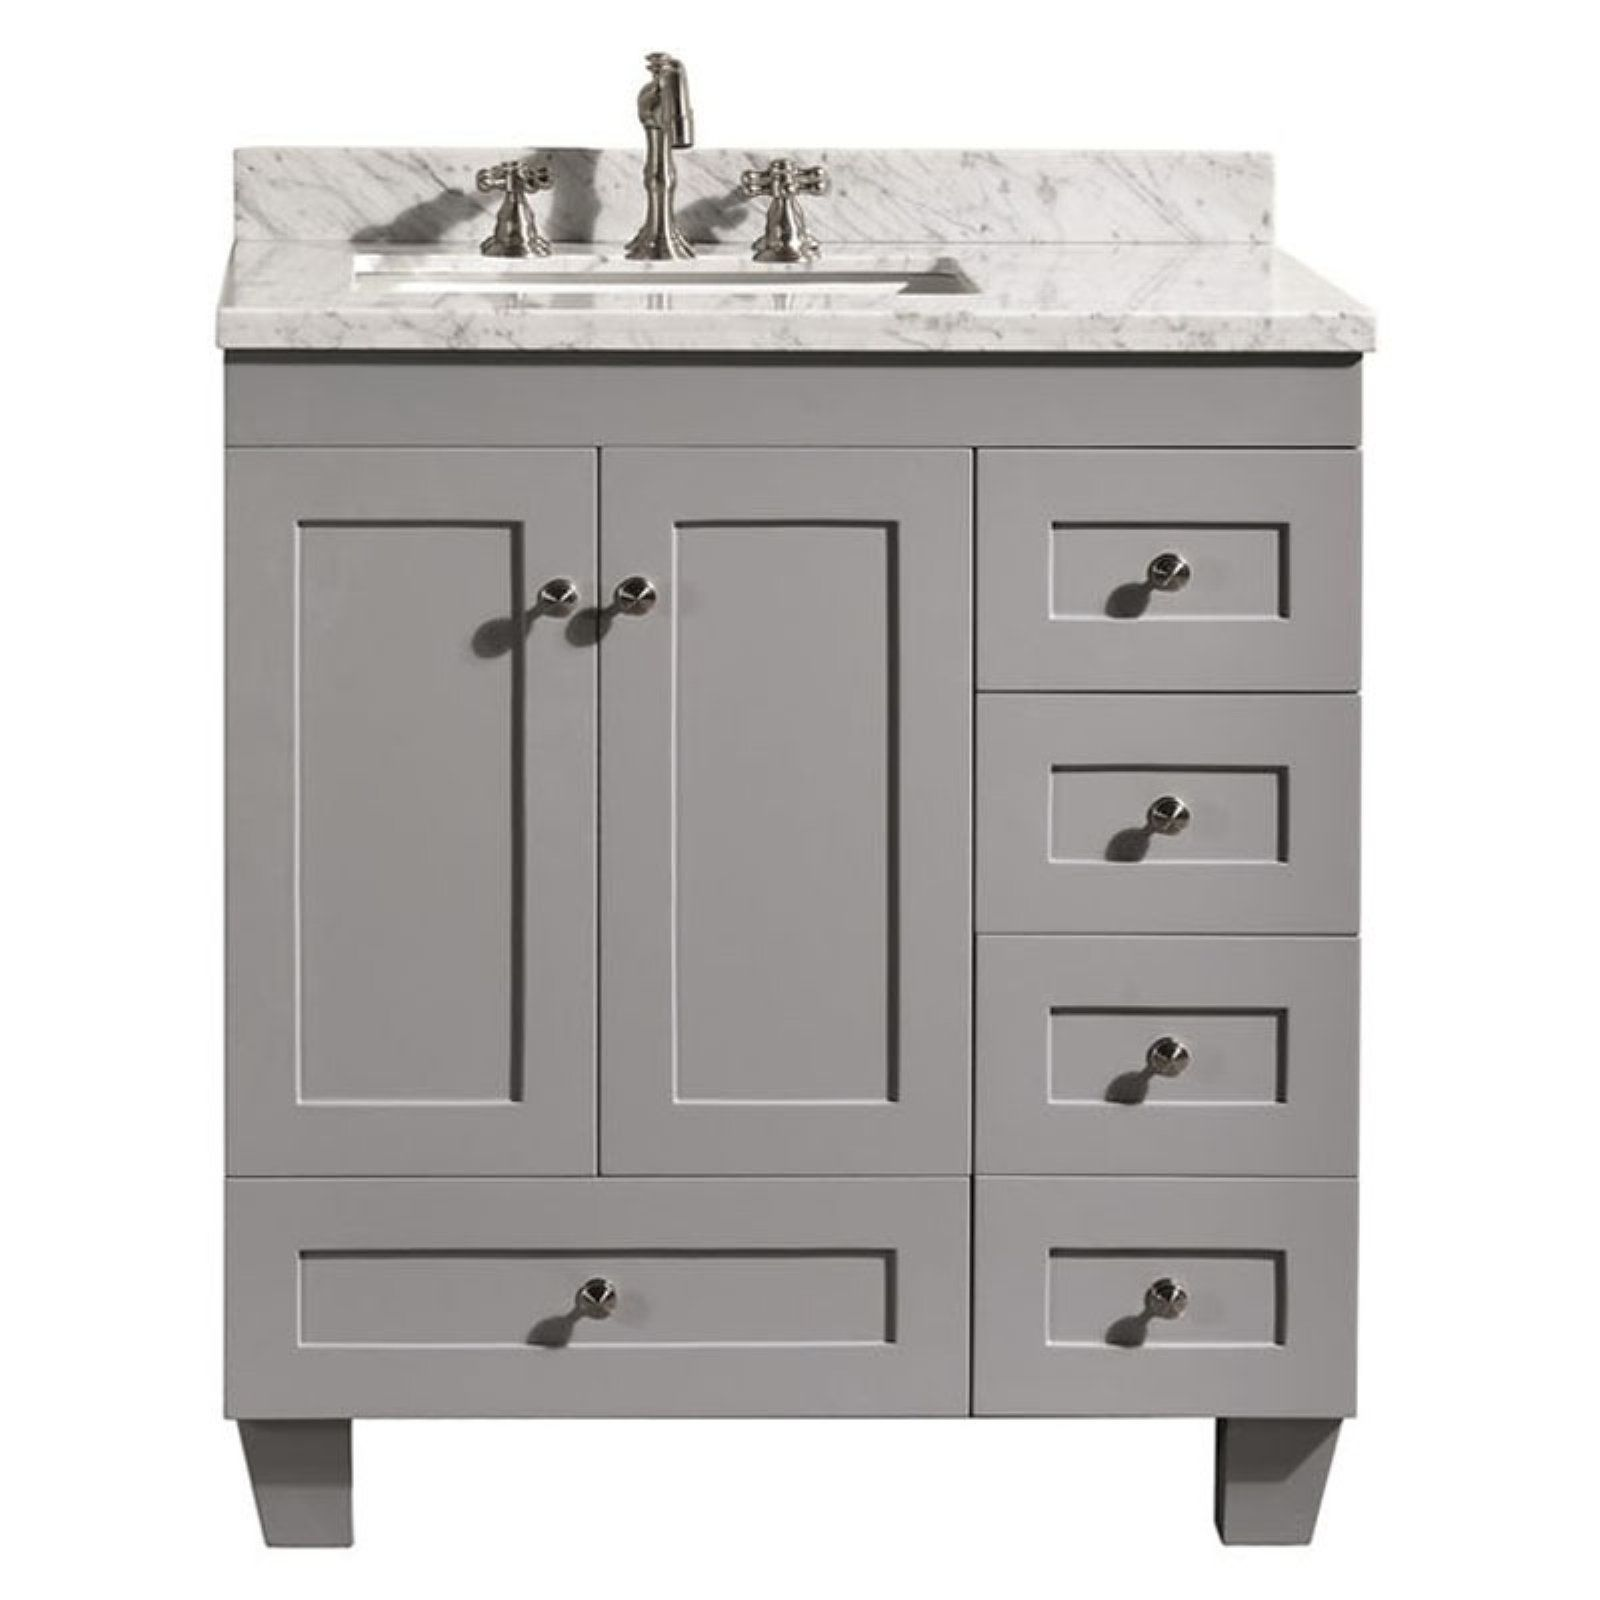 Eviva Acclaim 30 In Single Bathroom Vanity Set 30 Inch Bathroom